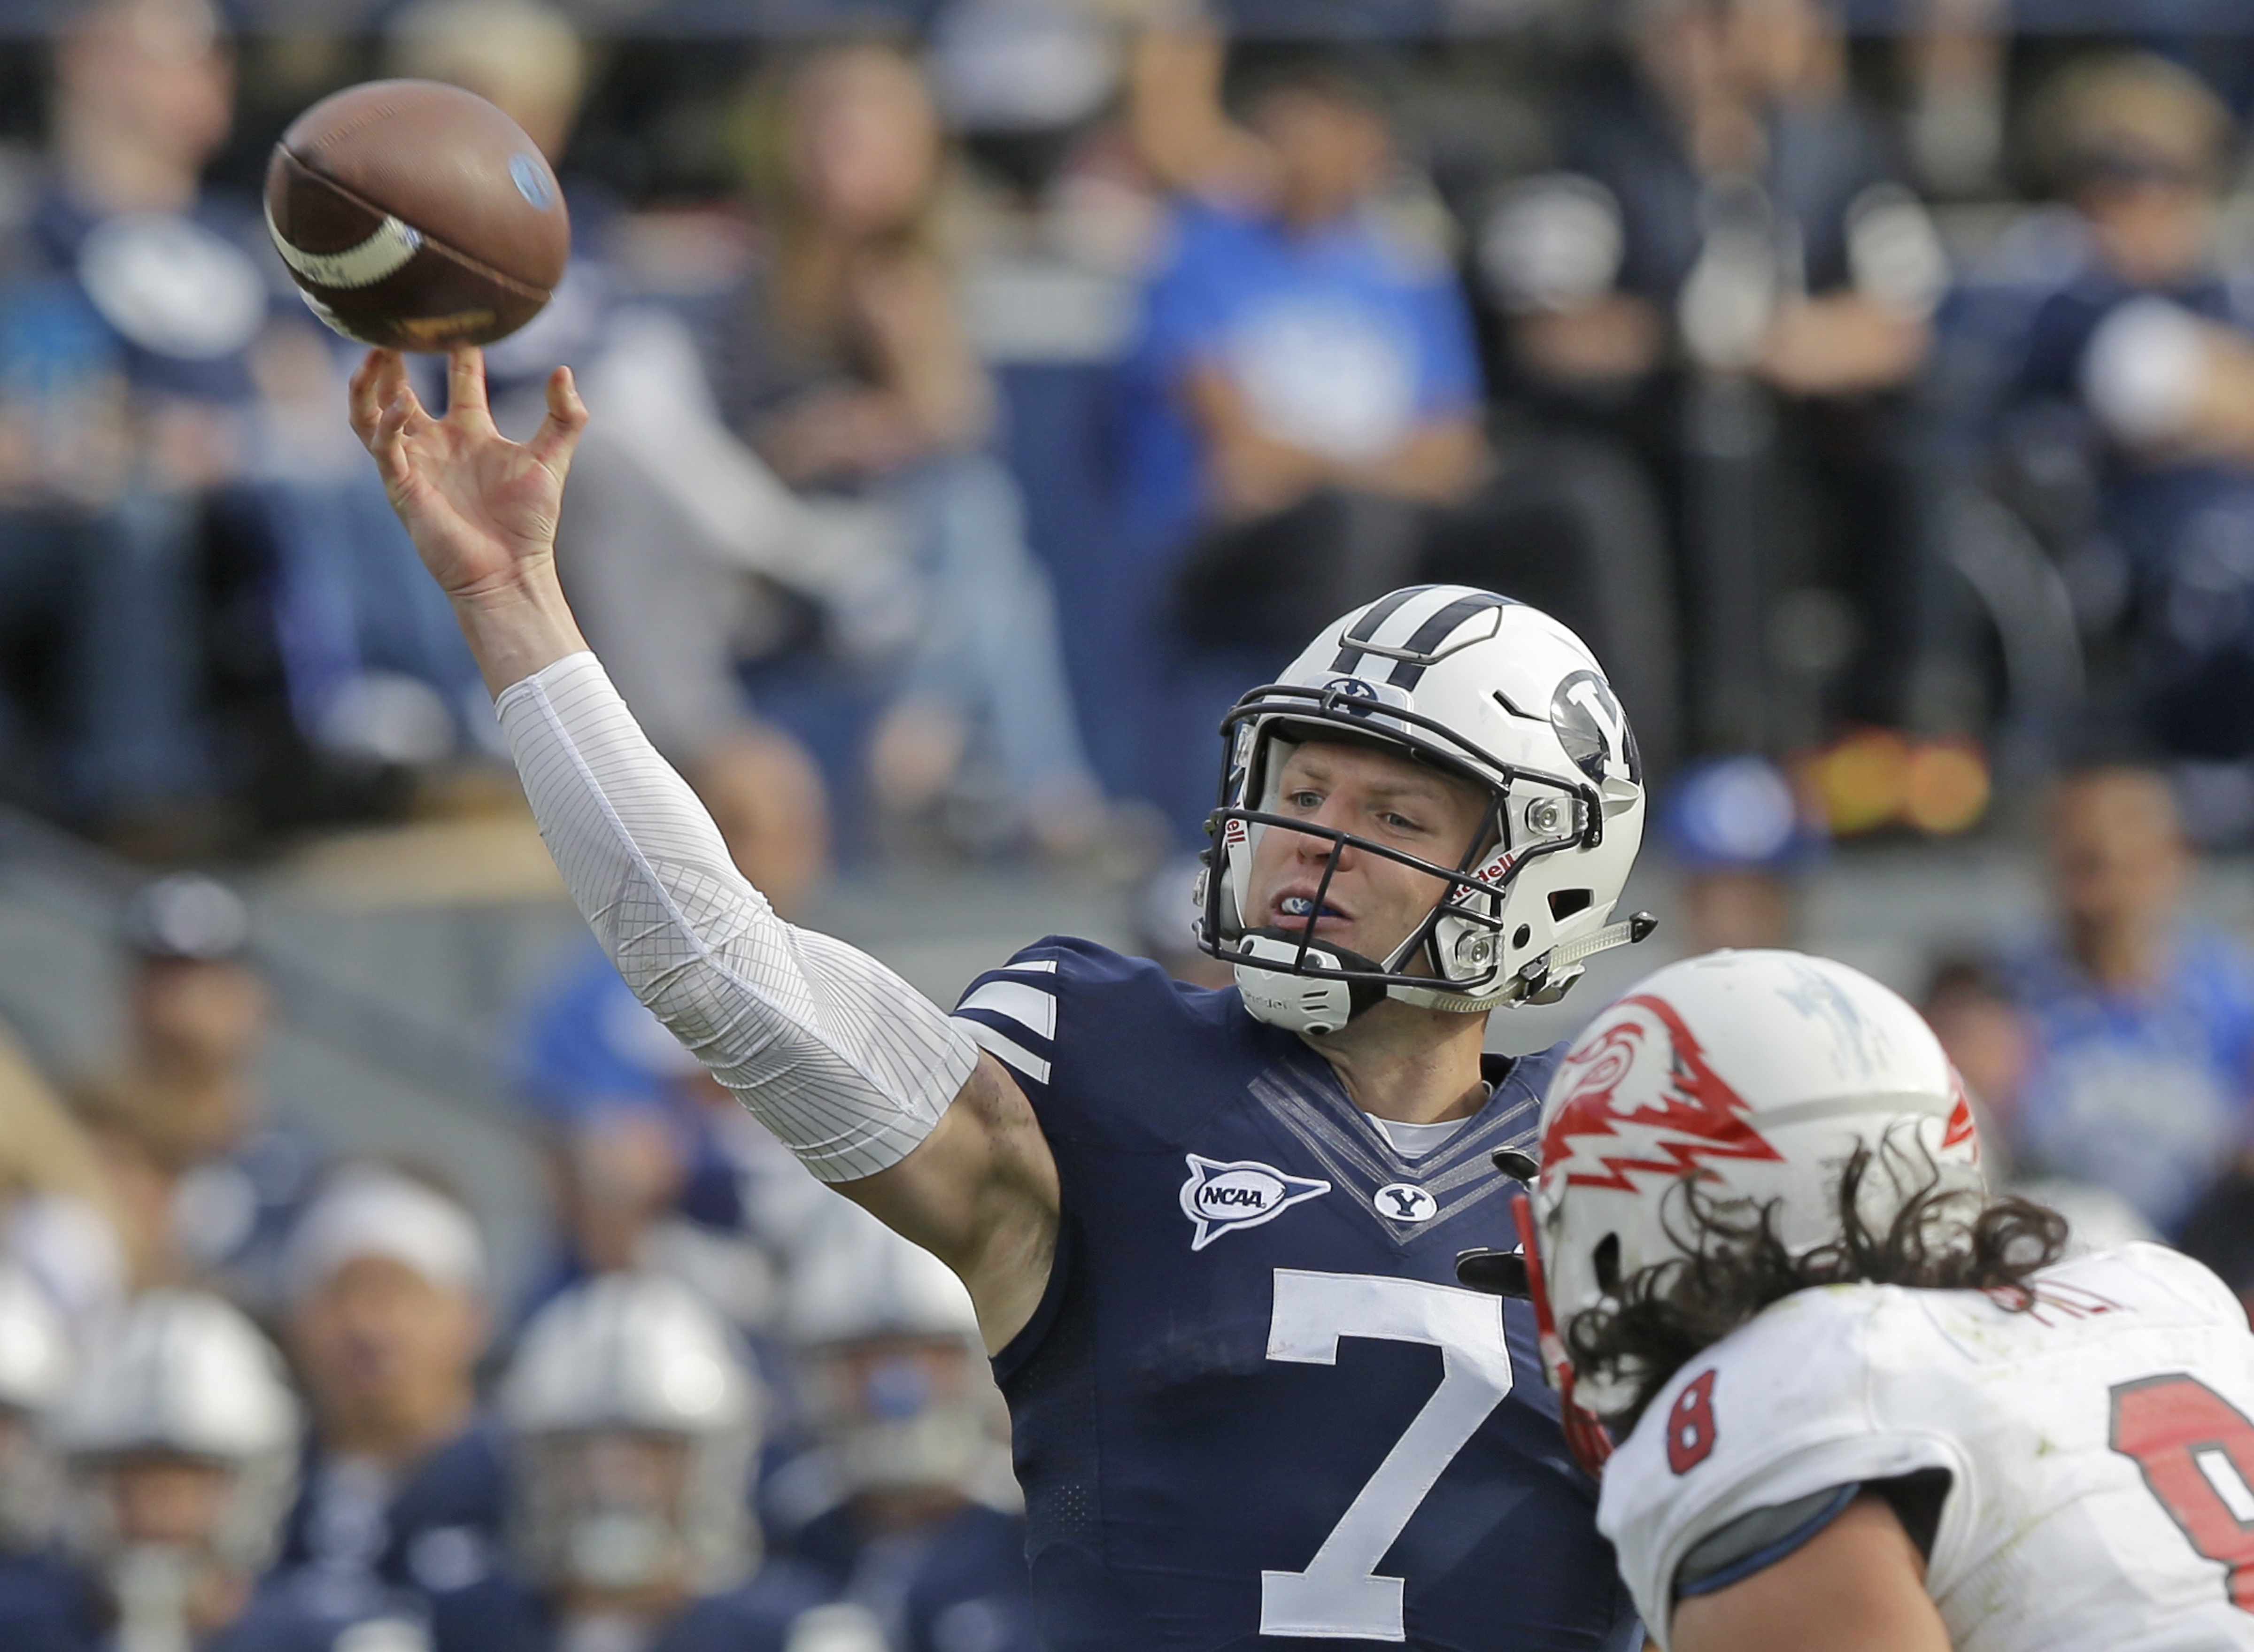 BYU quarterback Taysom Hill (7) passes the ball in the first half during an NCAA college football game against Southern Utah, Saturday, Nov. 12, 2016, in Provo, Utah. (AP Photo/Rick Bowmer)